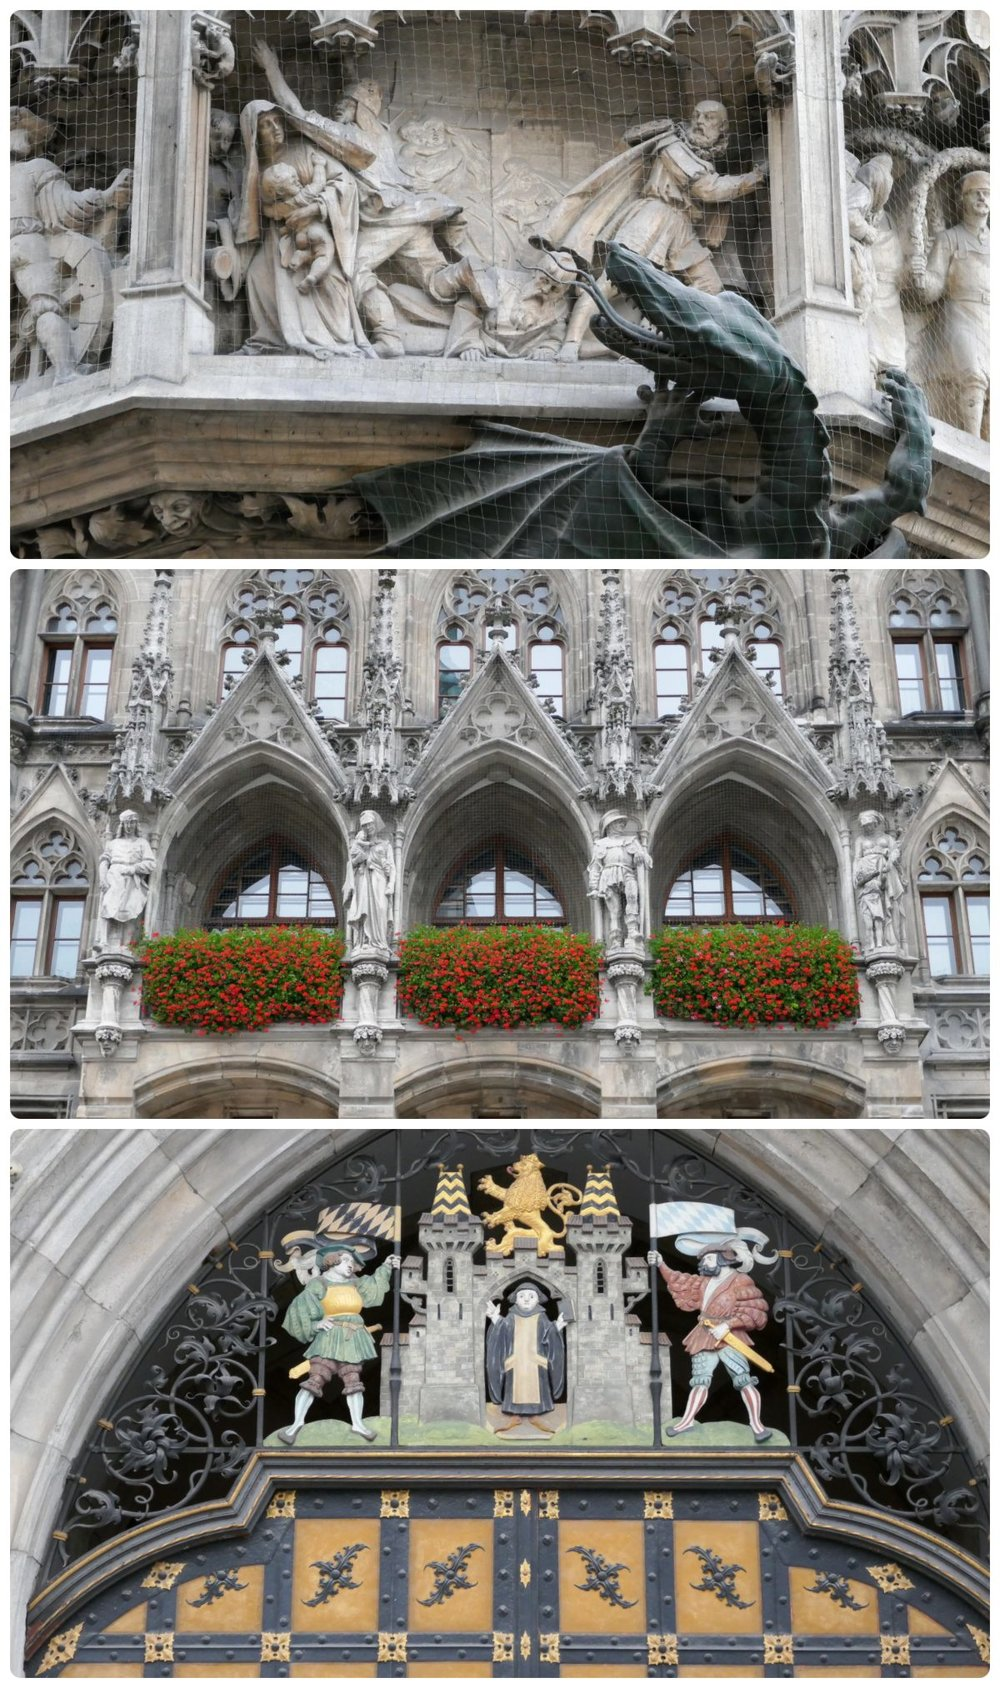 Rauthaus in Marienplatz, Munich, Germany. The detail on the building is exquisite, particularly Wurmeck the Dragon!